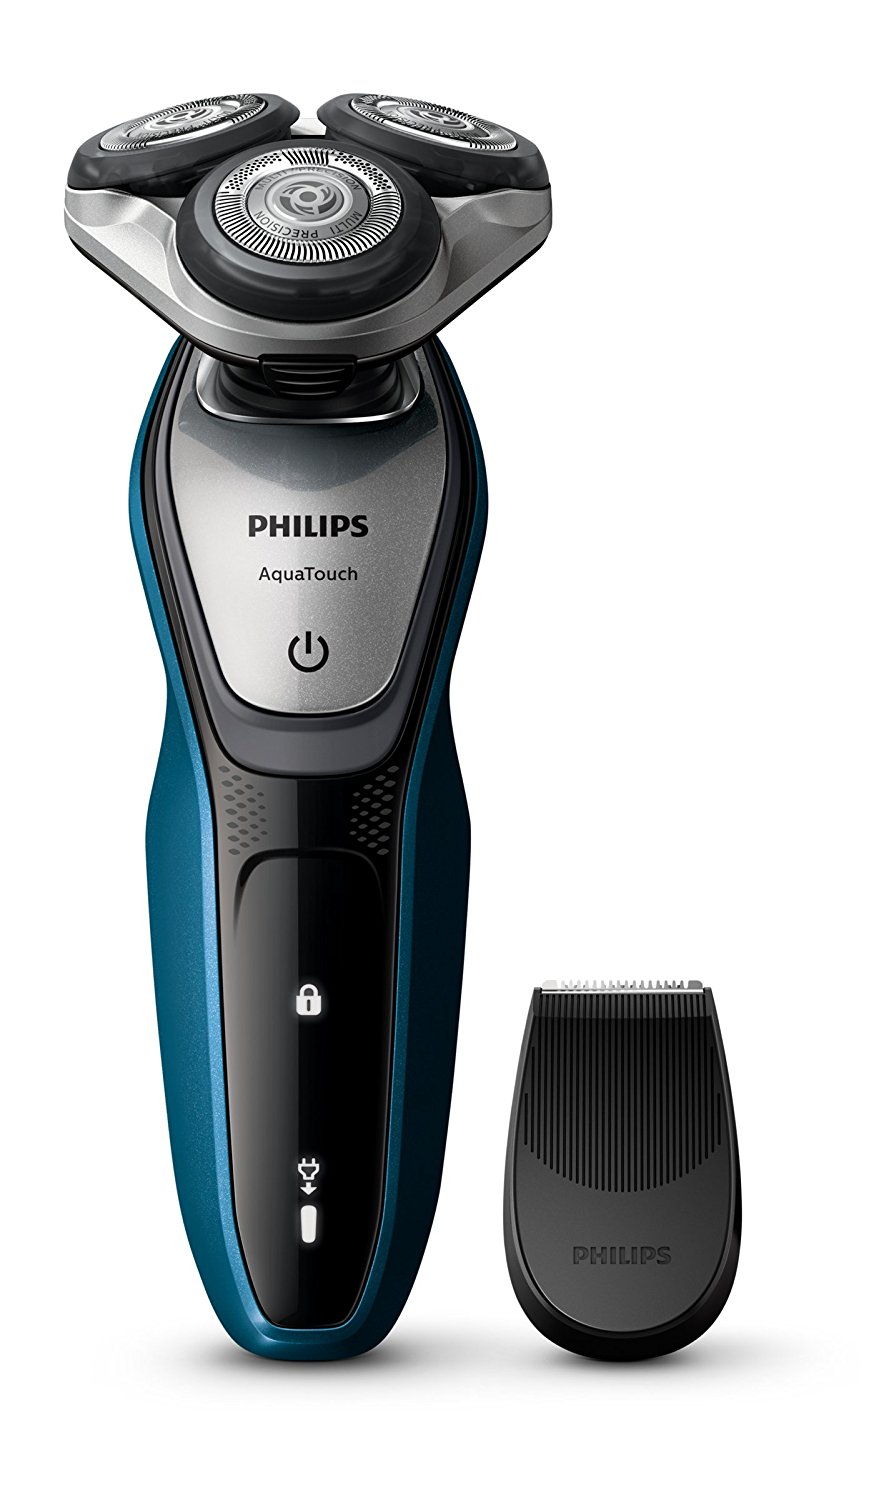 Philips Aquatouch Rasierer amazon